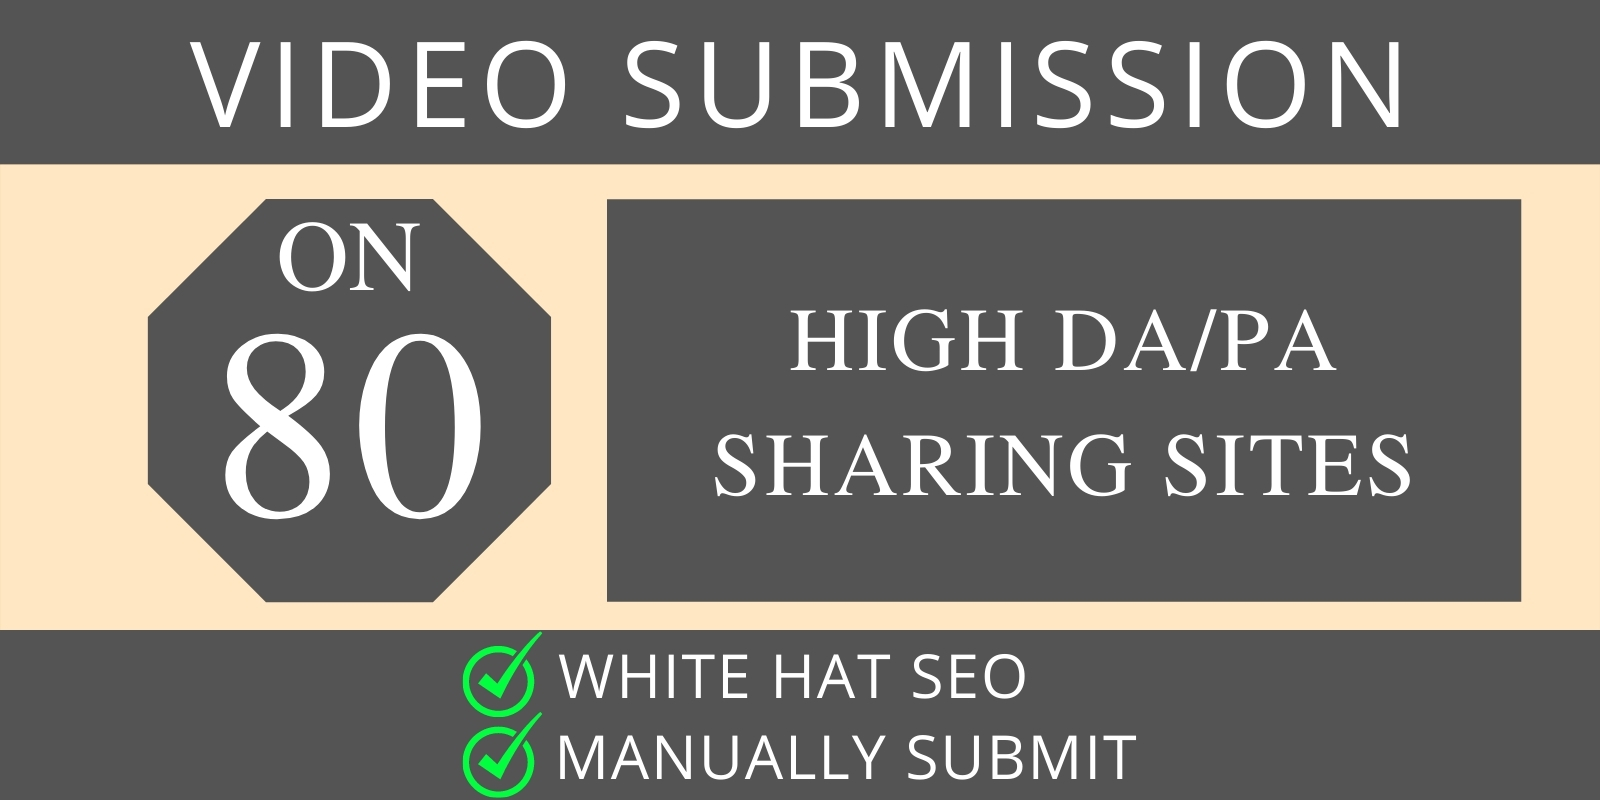 I Will Do Manual Video Submission On 80 Top Video Sharing Sites